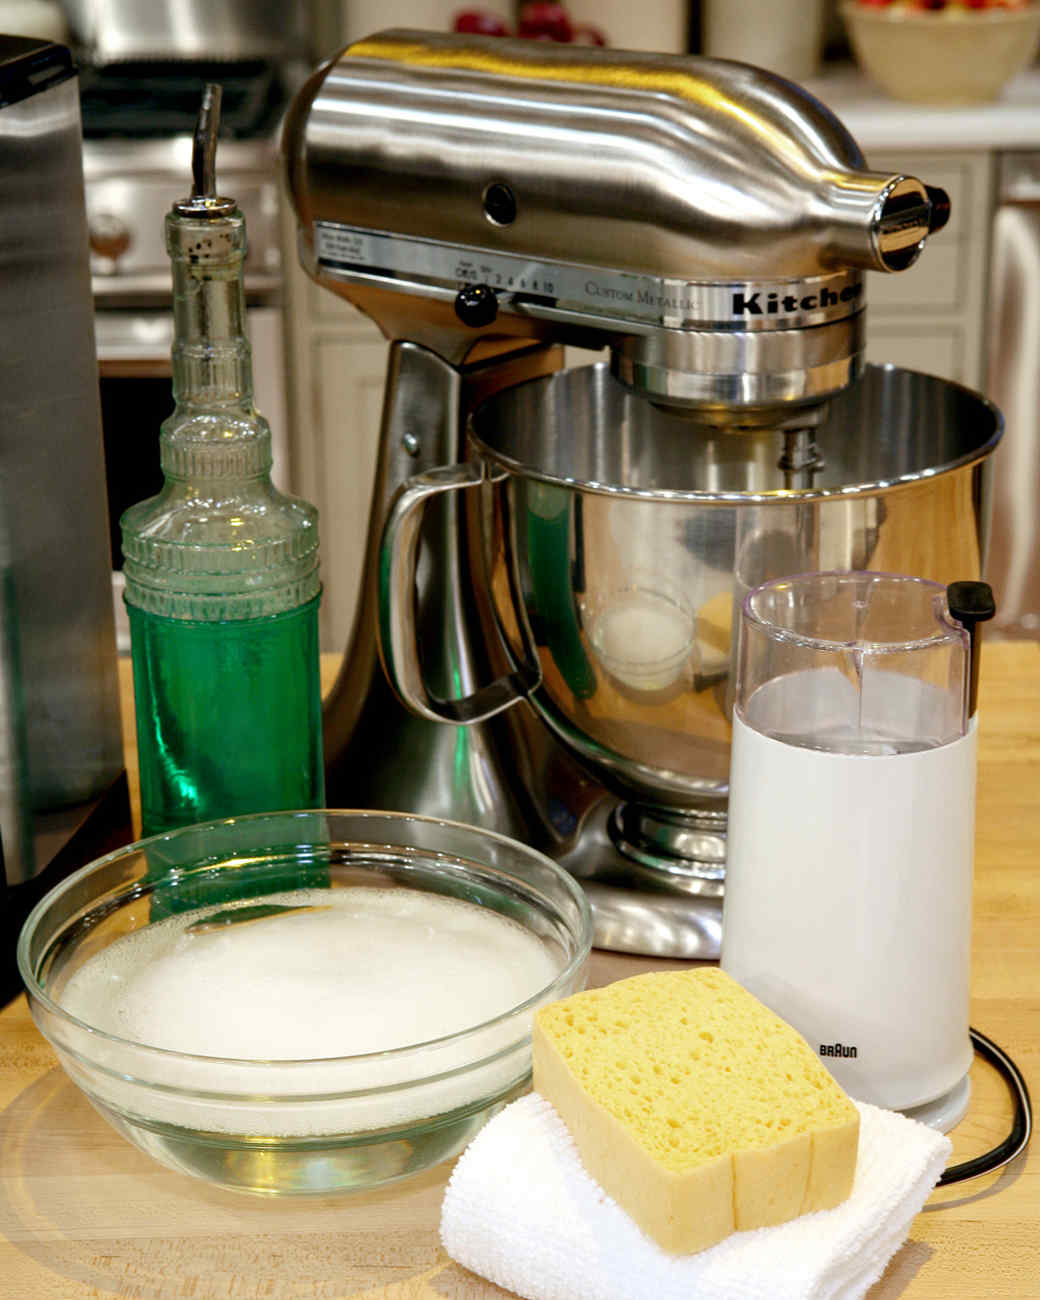 Cleaning Small Appliances the Right Way